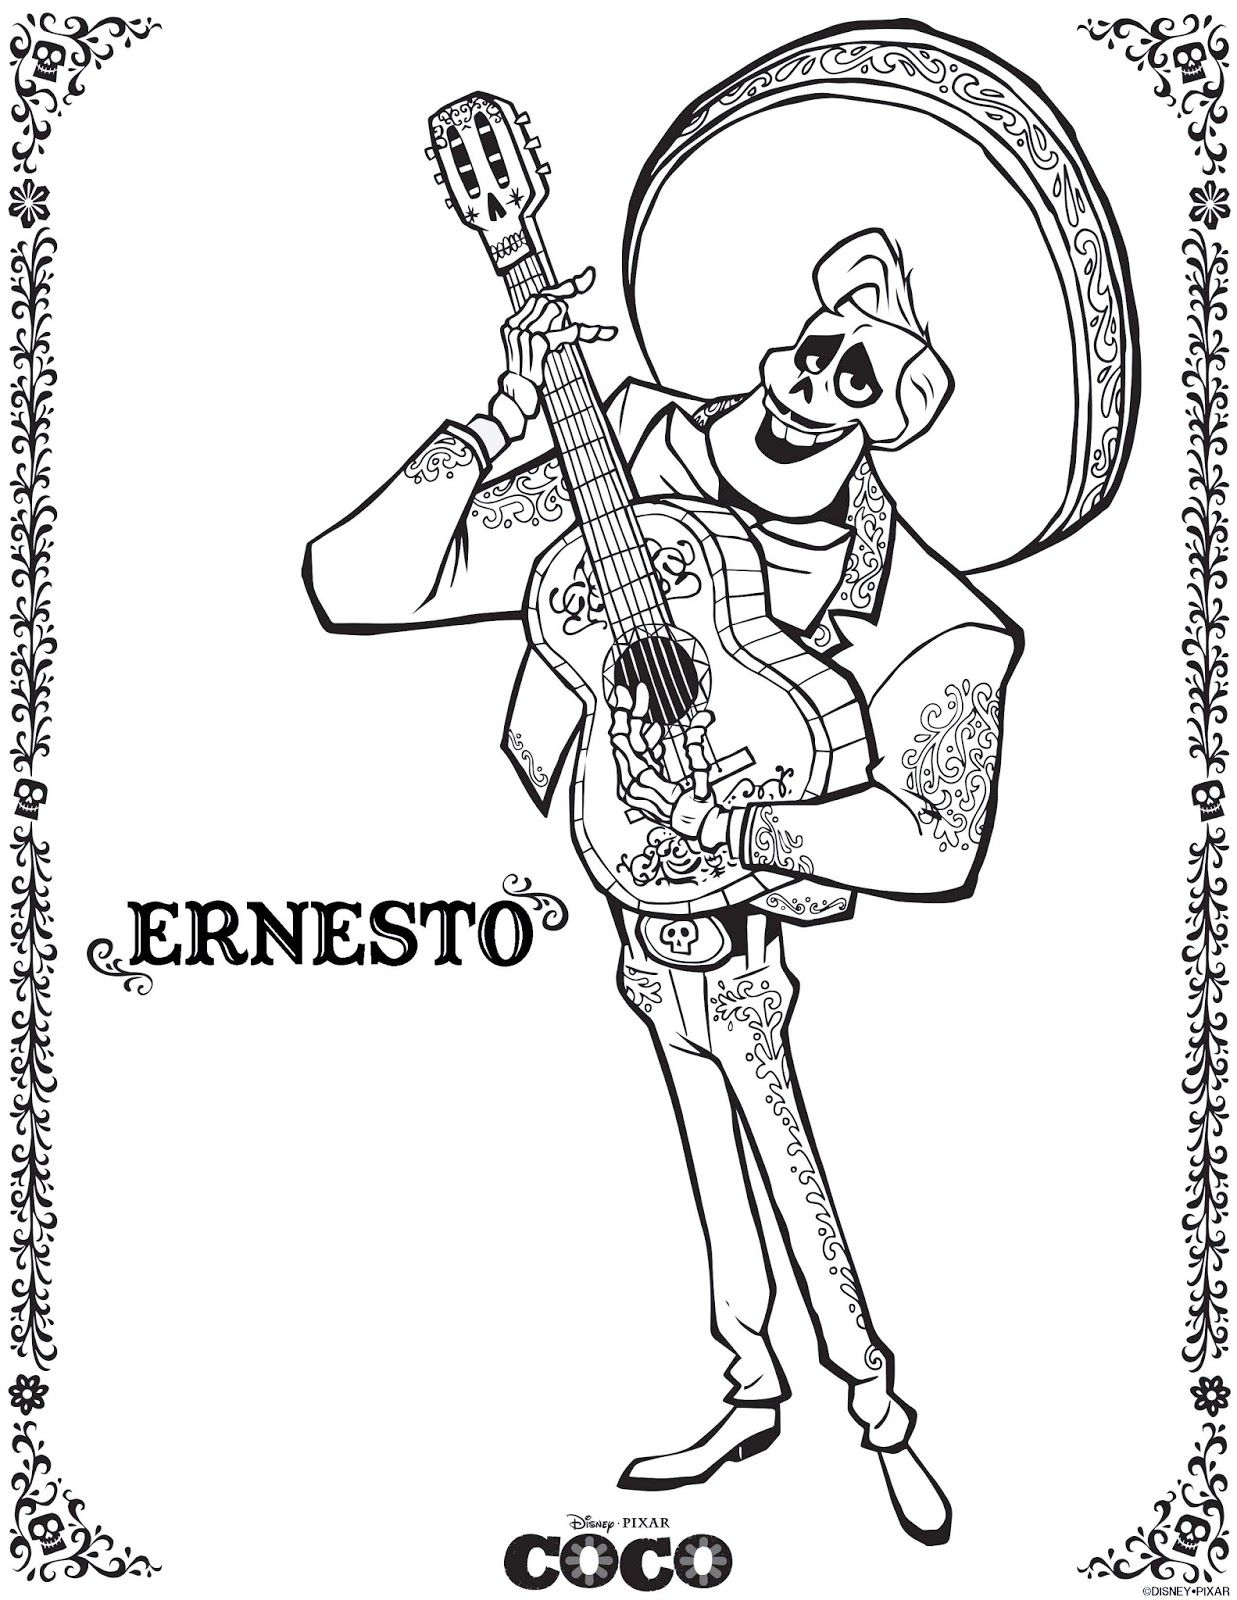 Coco Coloring Pages (August 2018 Edition) - Miguel coloring pages in ...